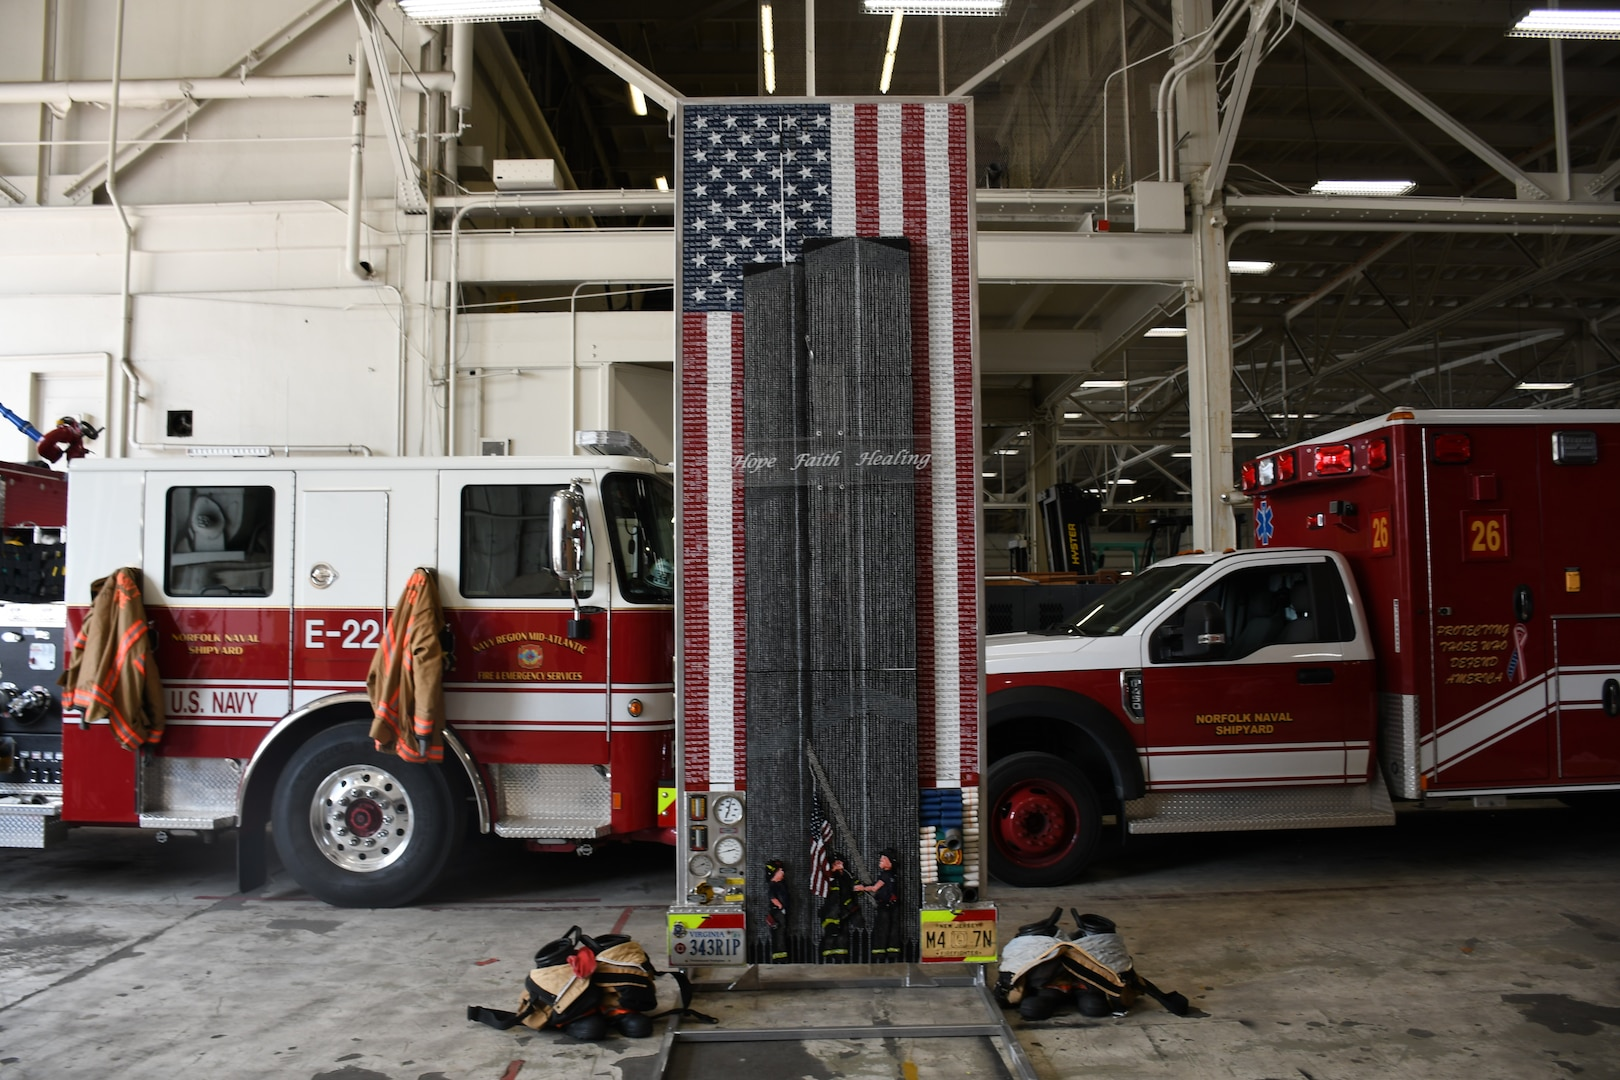 """In the Navy Region Mid-Atlantic Fire and Emergency Services firehouse aboard Norfolk Naval Shipyard (NNSY) the """"Divinity Among Heroes"""" memorial artwork stands in an ambulance bay. The tribute piece is made up of 30,000+ drywall and trim screws, 2,978 one-inch wooden blocks, the base, a simulated fire truck, is constructed of authentic gauges, cranks, handles, hoses, chevrons, and plates from a decommissioned fire truck and it stands 12 foot tall by four foot wide."""